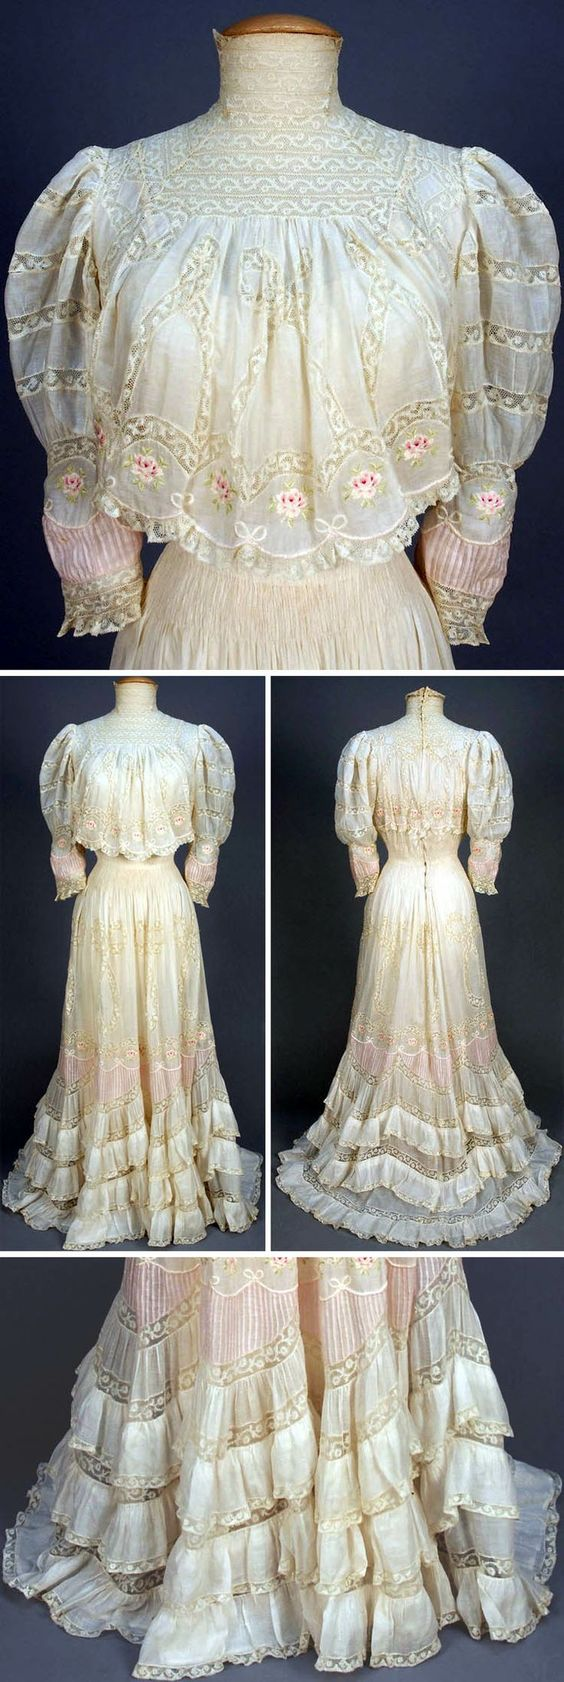 White tea gown with Valenciennnes lace. White cotton lawn with lace high neck and bands in a pattern of loops and bows, having a band of polychrome embroidered roses at lower bodice, sleeve, and skirt. Sleeves and skirt have scalloped inserts of tucked pink cotton beneath embroidered bows; lower skirt ruffled in three bands.